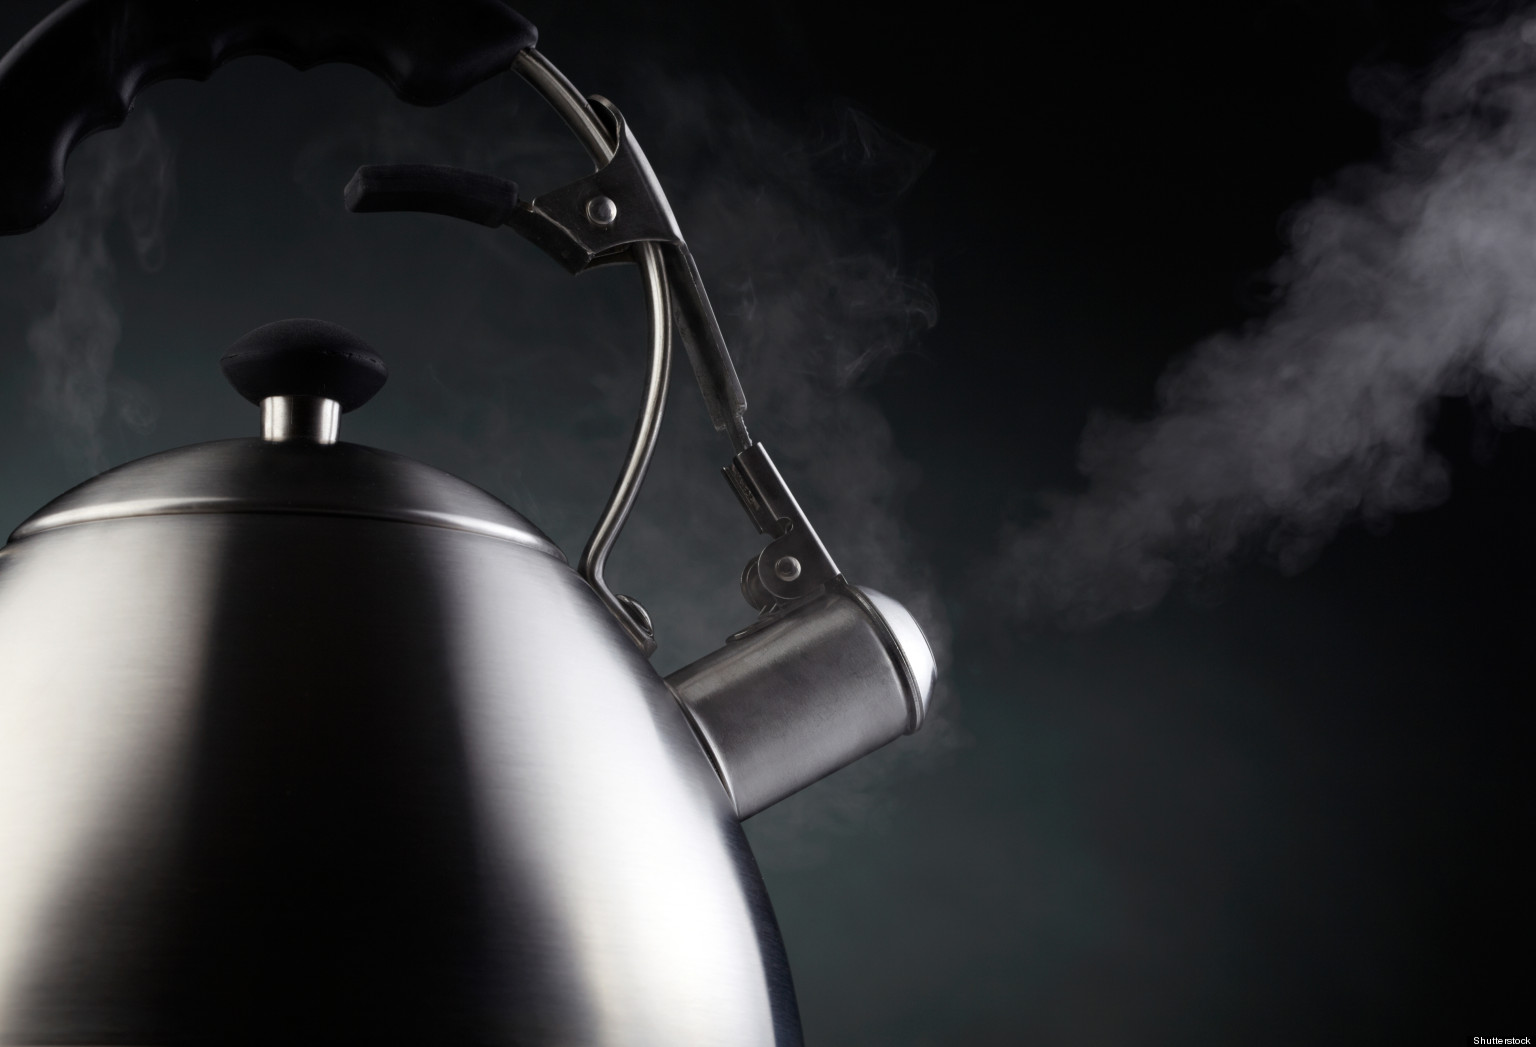 Boiling Water Steam Pop the Kettle On ...I...